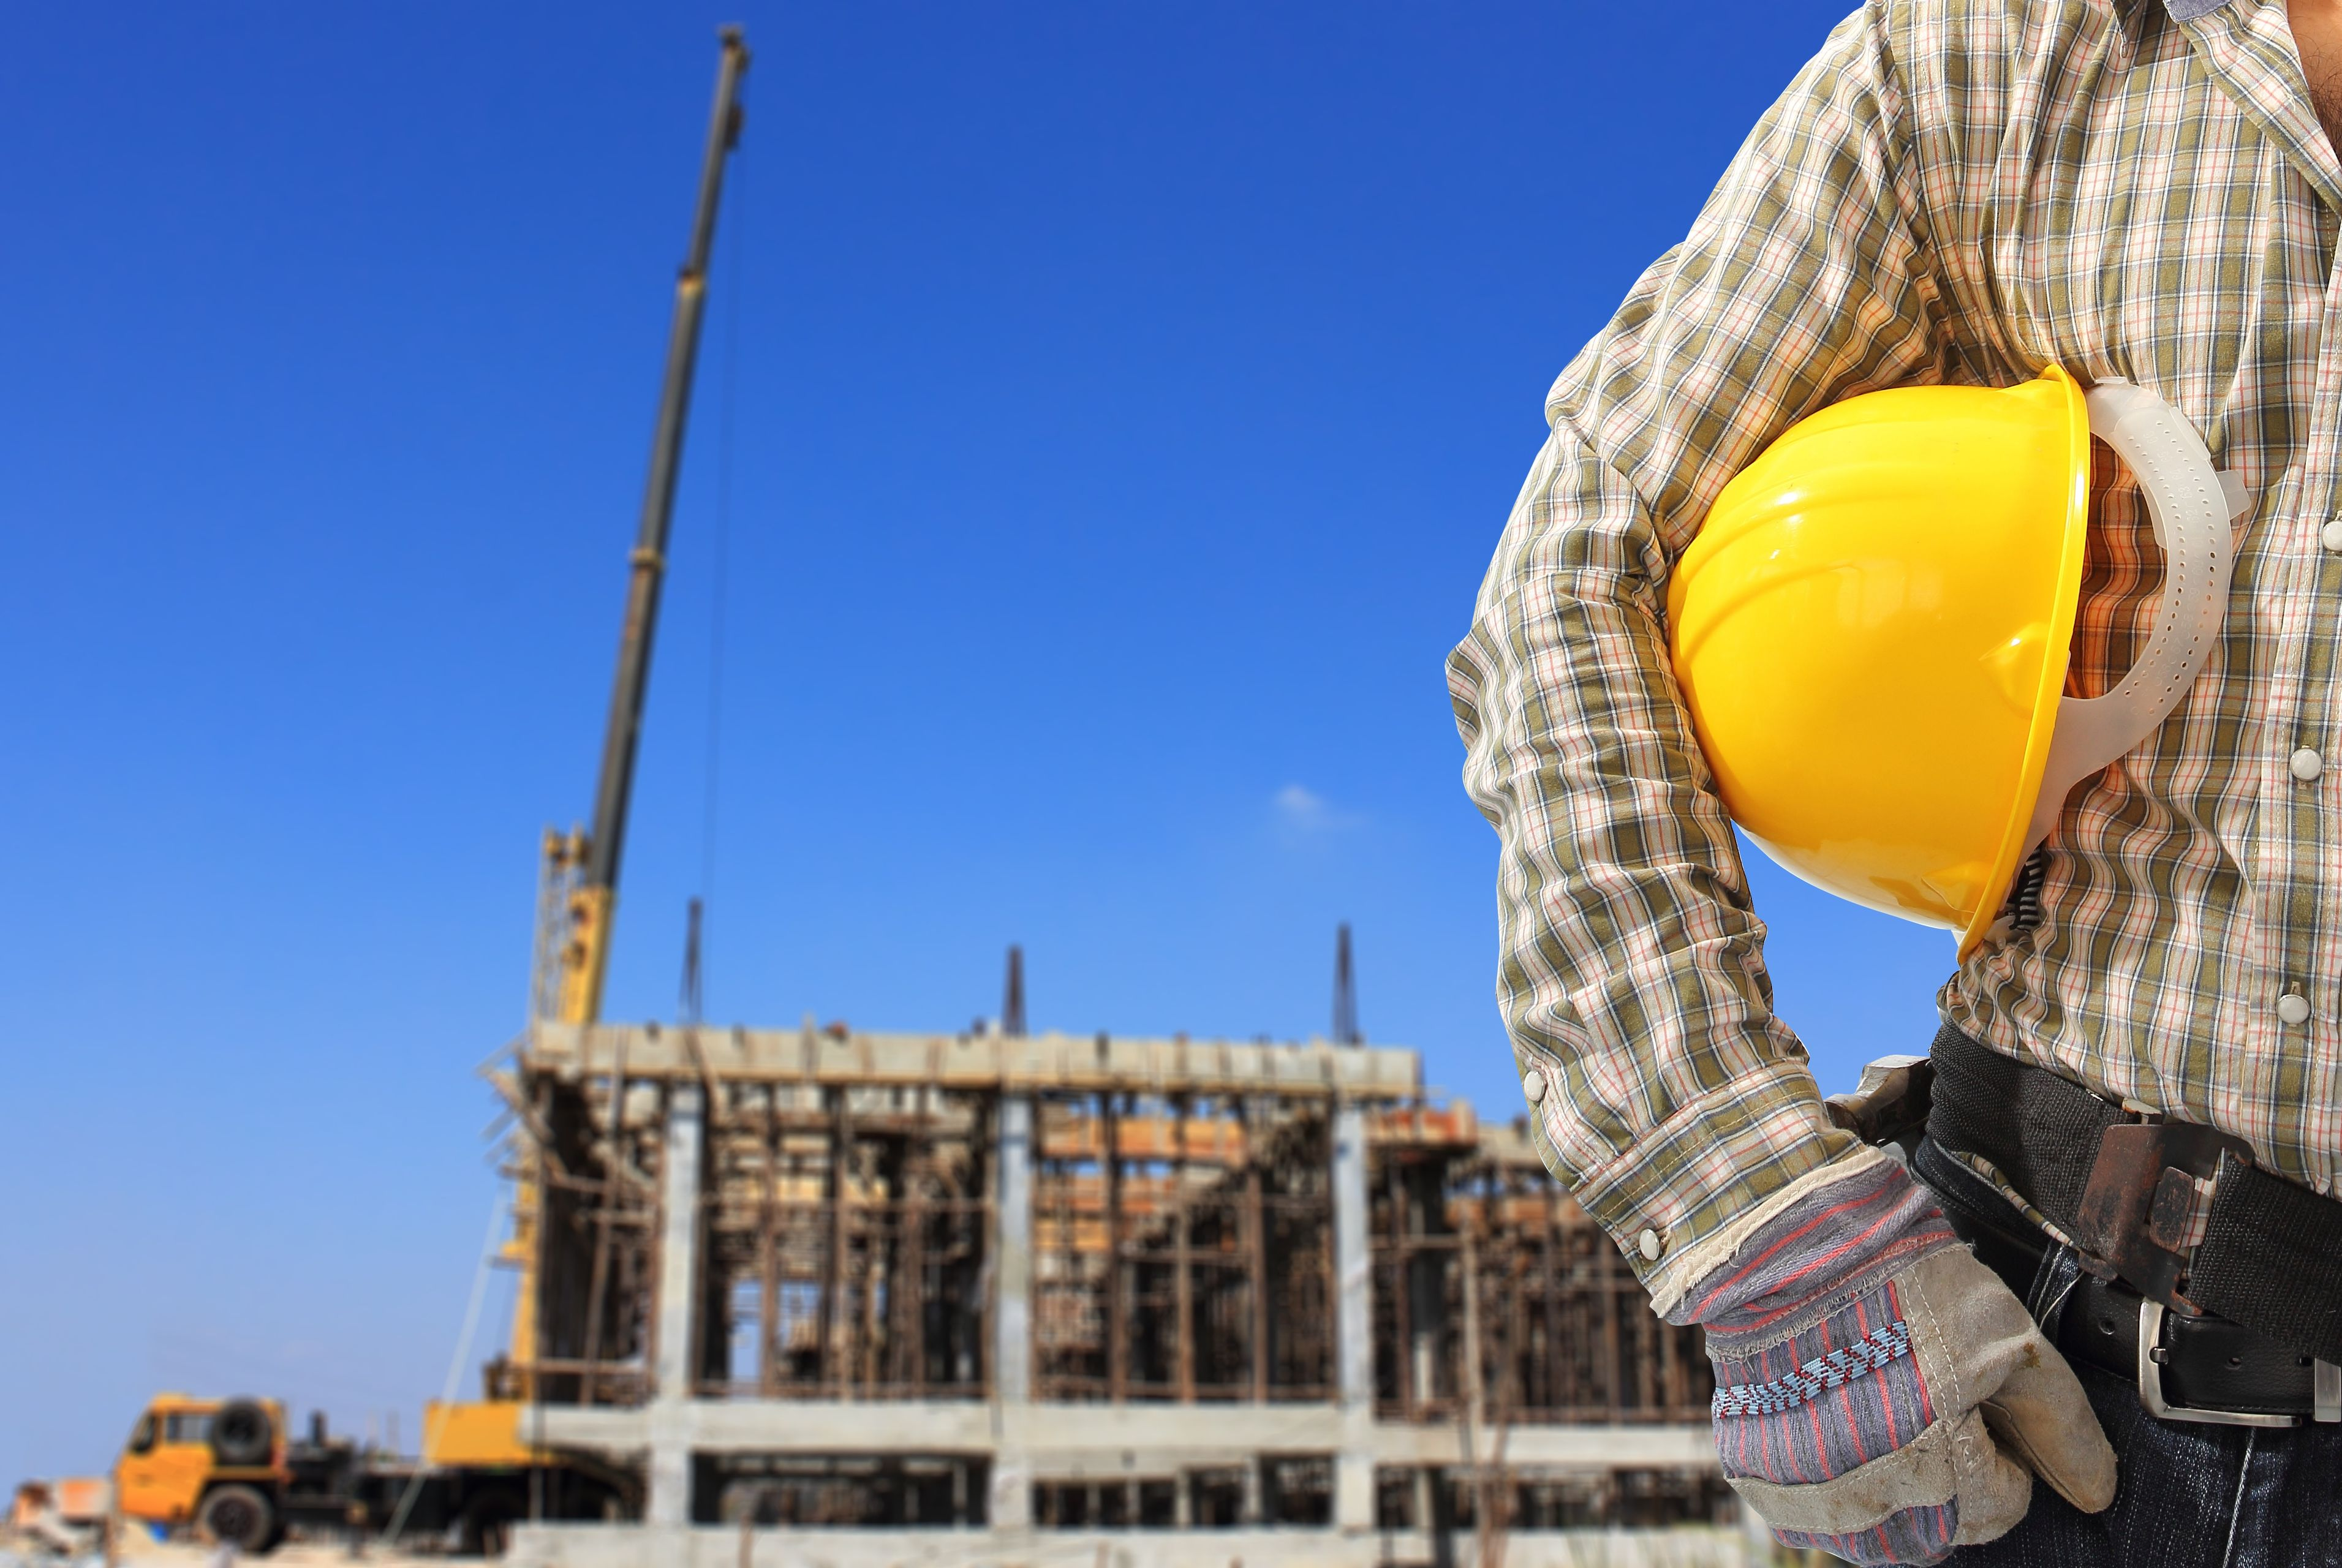 General Contracting Companies in Irvine CA | DLR Construction